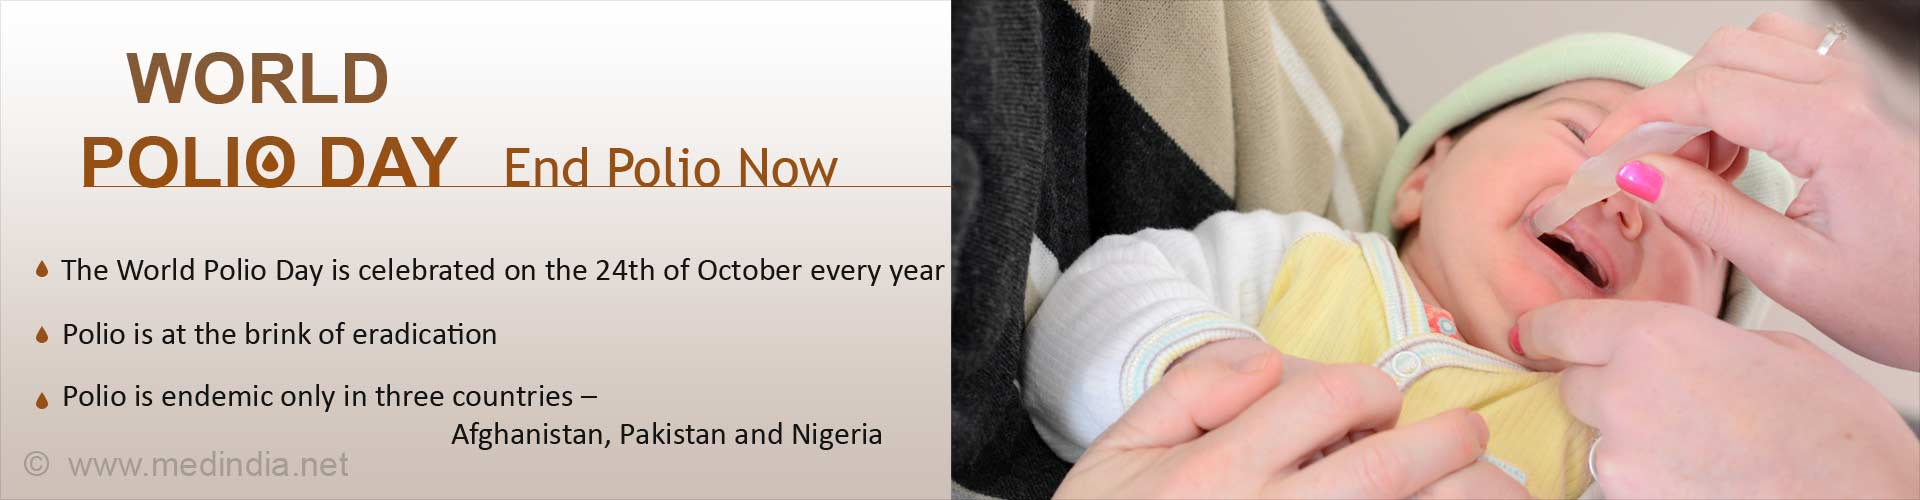 World Polio Day - End Polio Now - The world polio day is celebrated on the 24th October every year - Polio is the brink of eradication - Polio is endemic only in three countries - Afghanistan, Pakistan and Nigeria